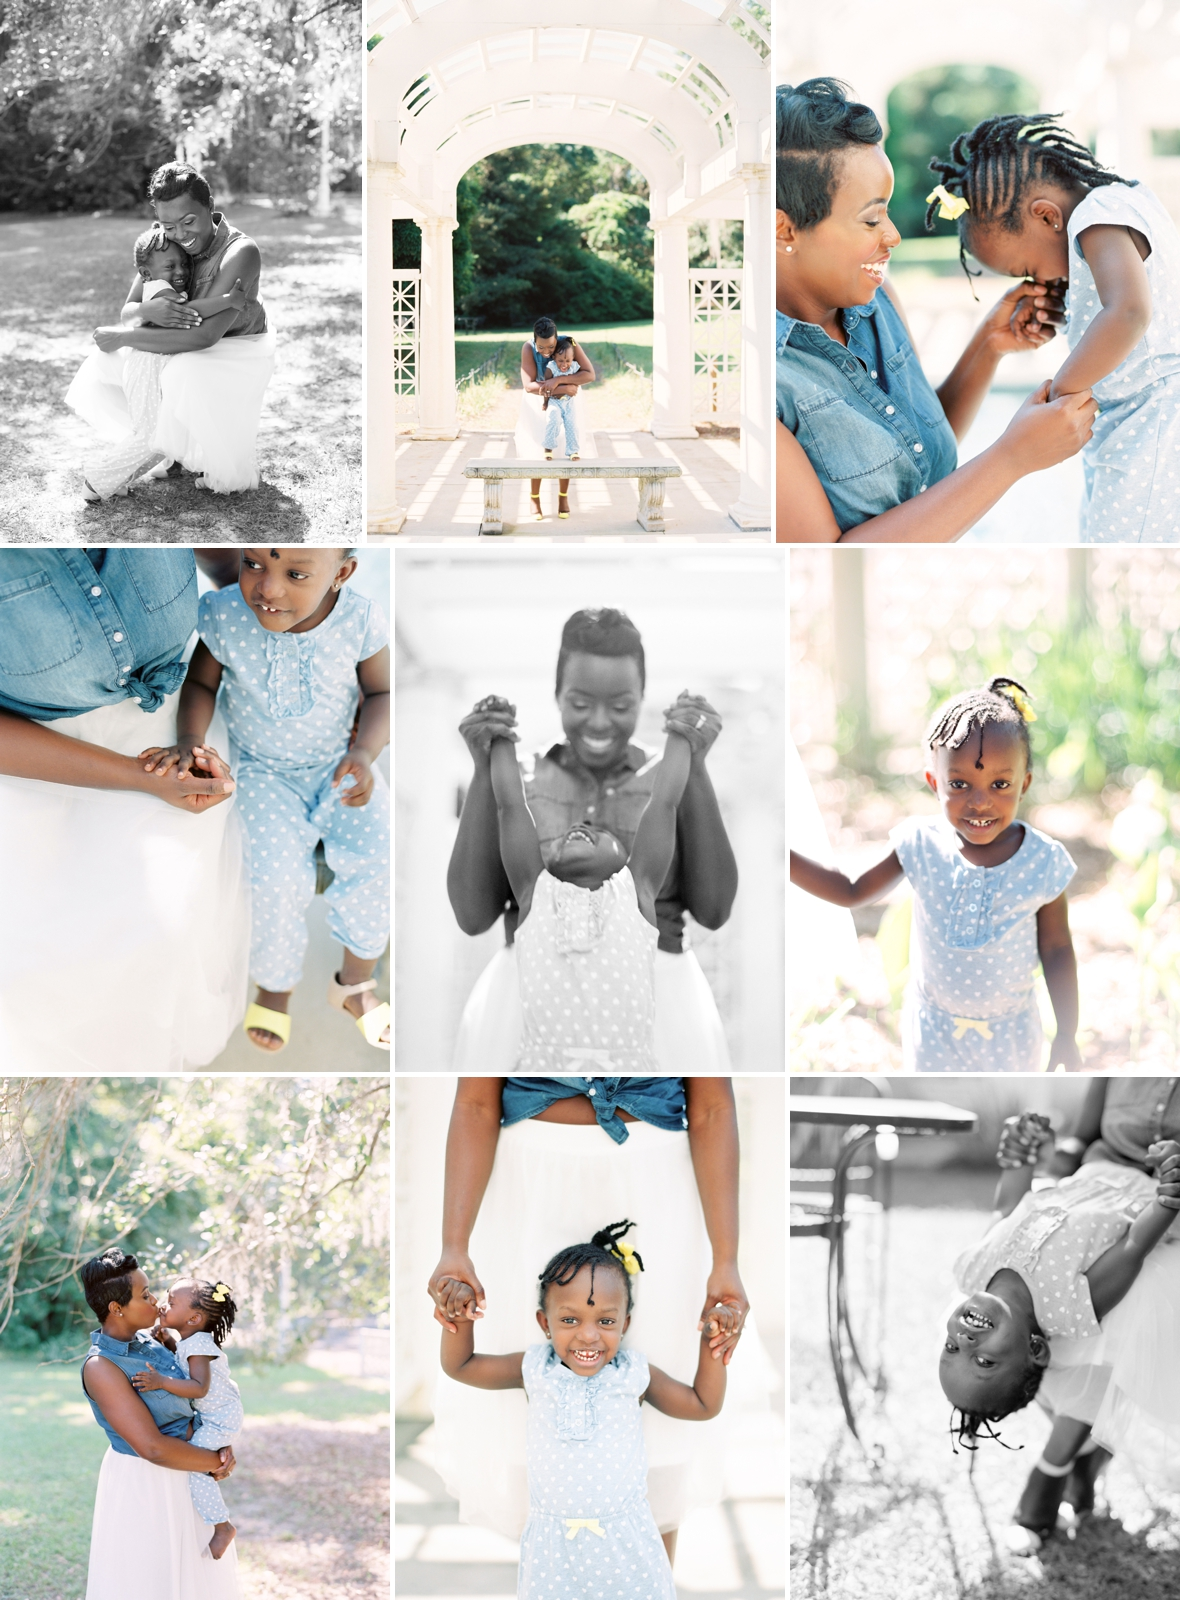 tallahassee_family_photographer_shannon_griffin.jpg